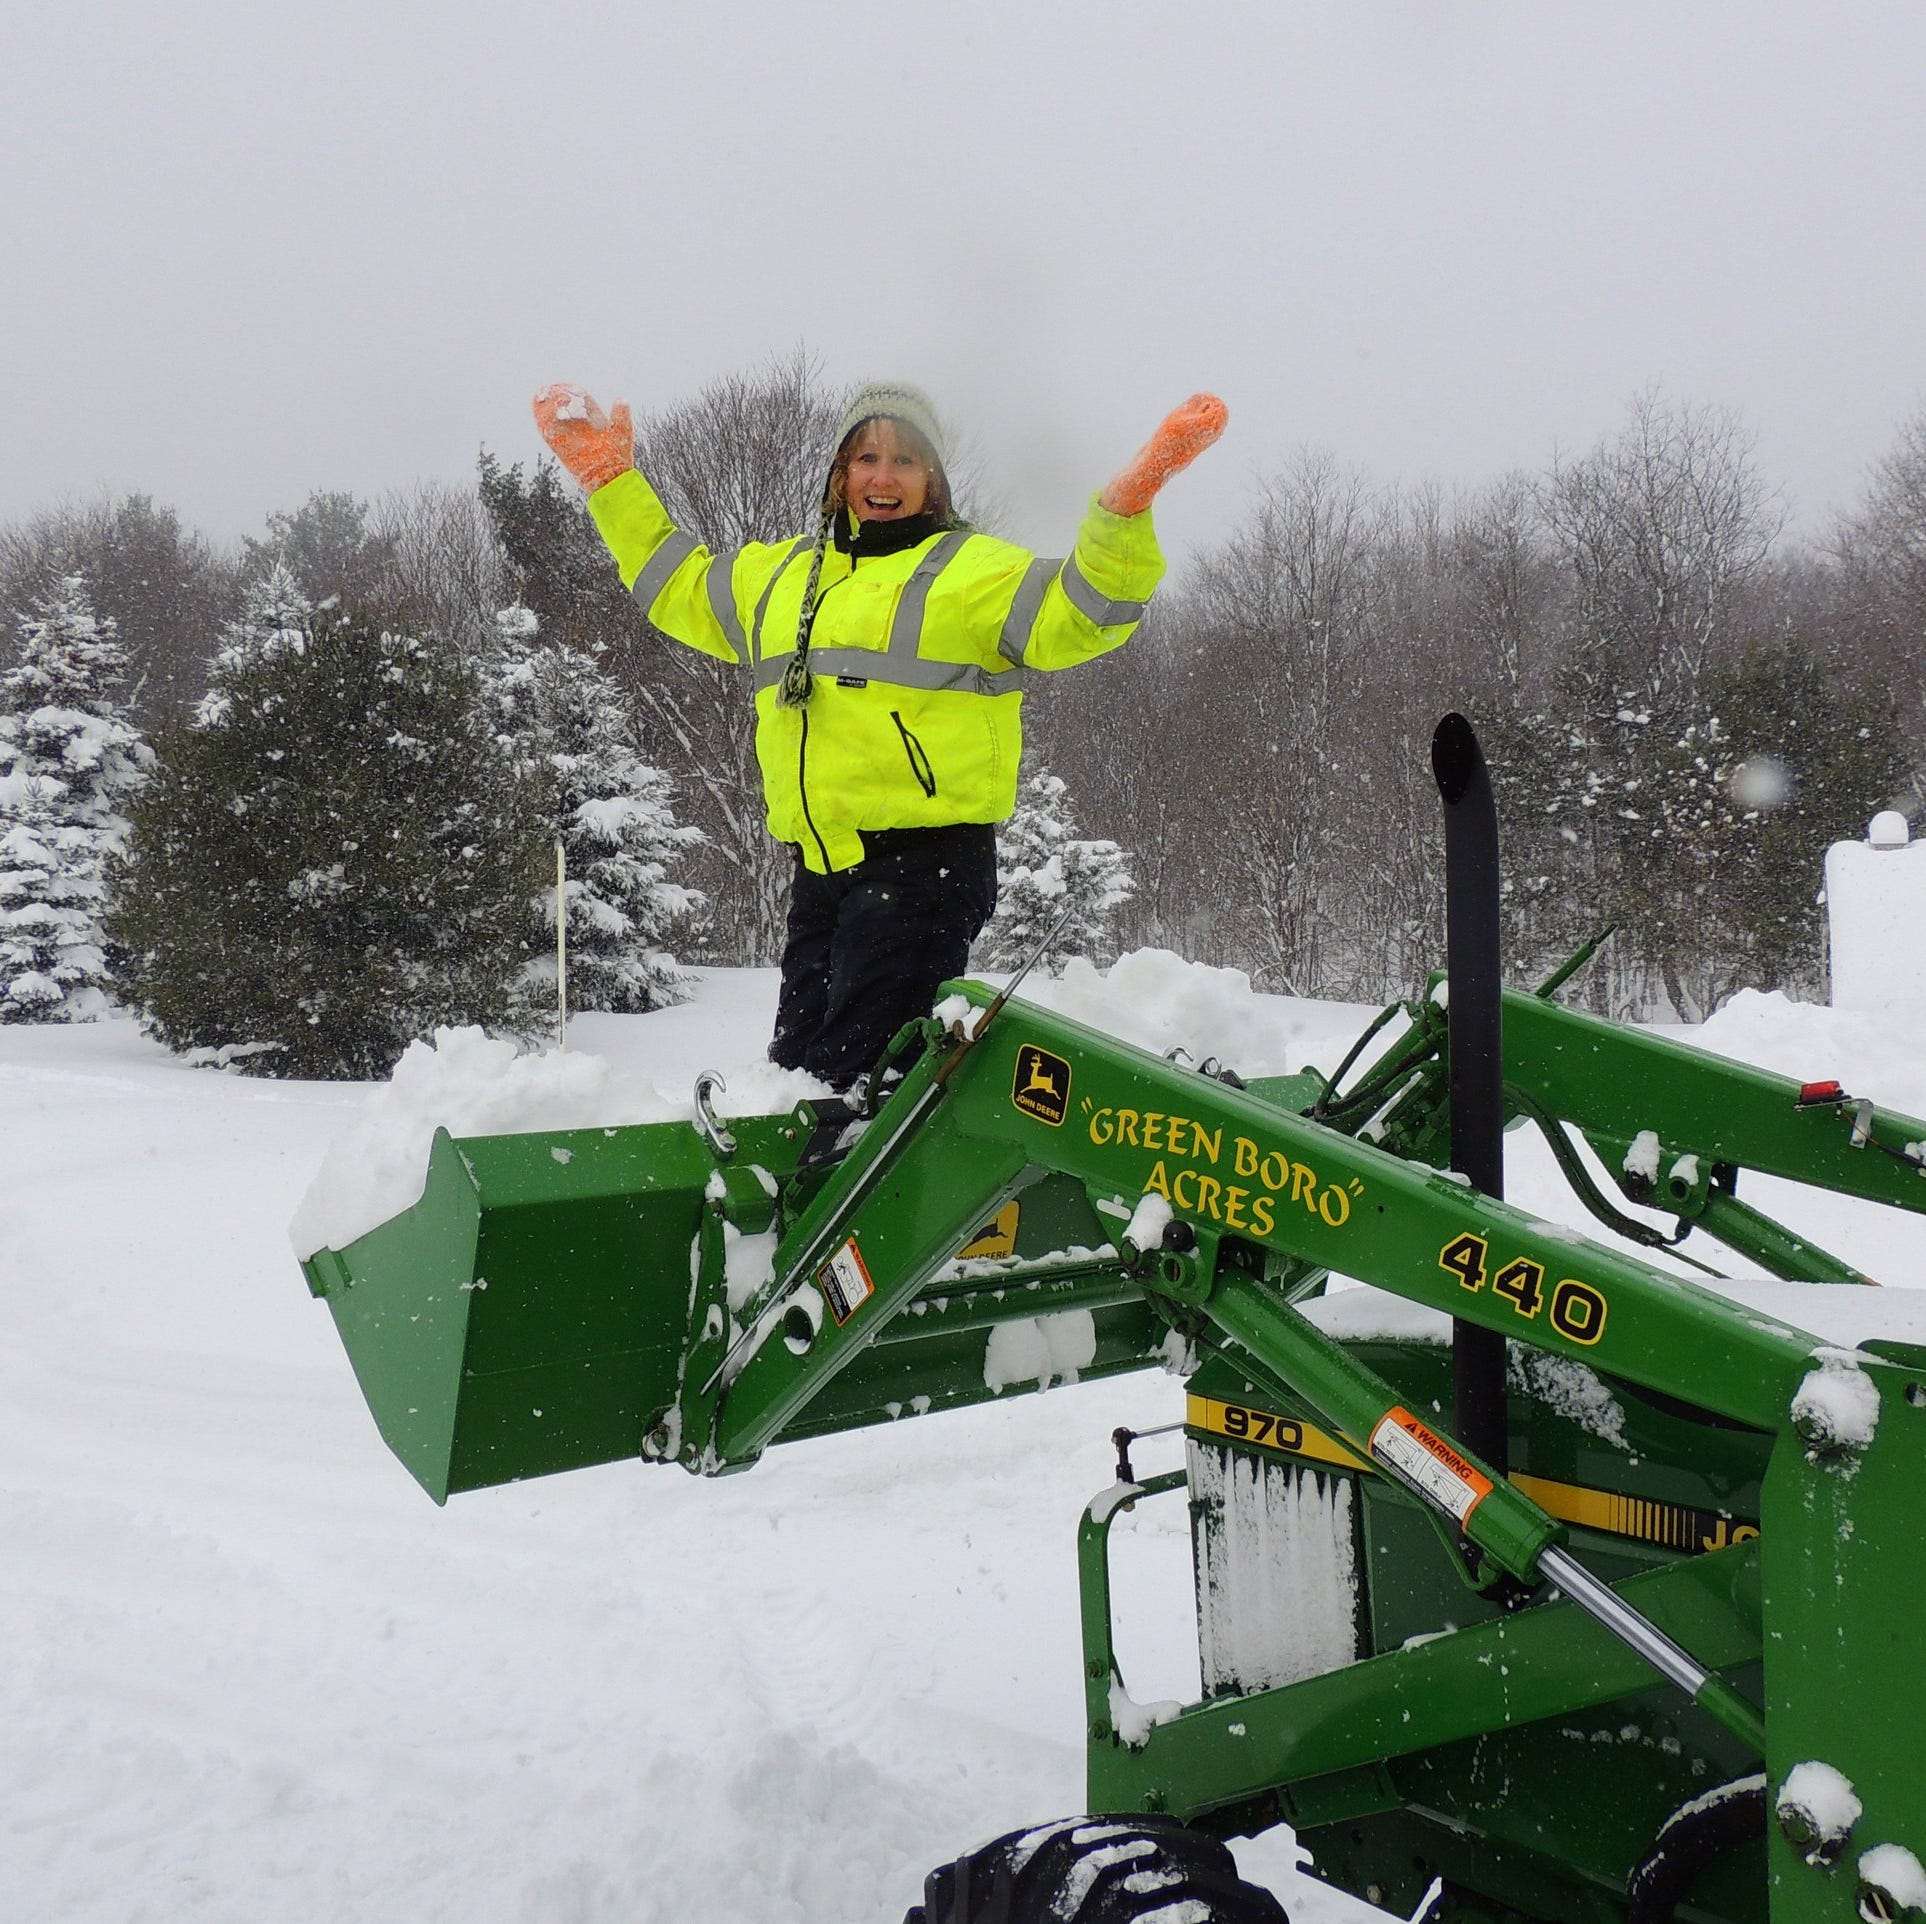 The snowiest spot in the Great Lakes? The winner's in New York